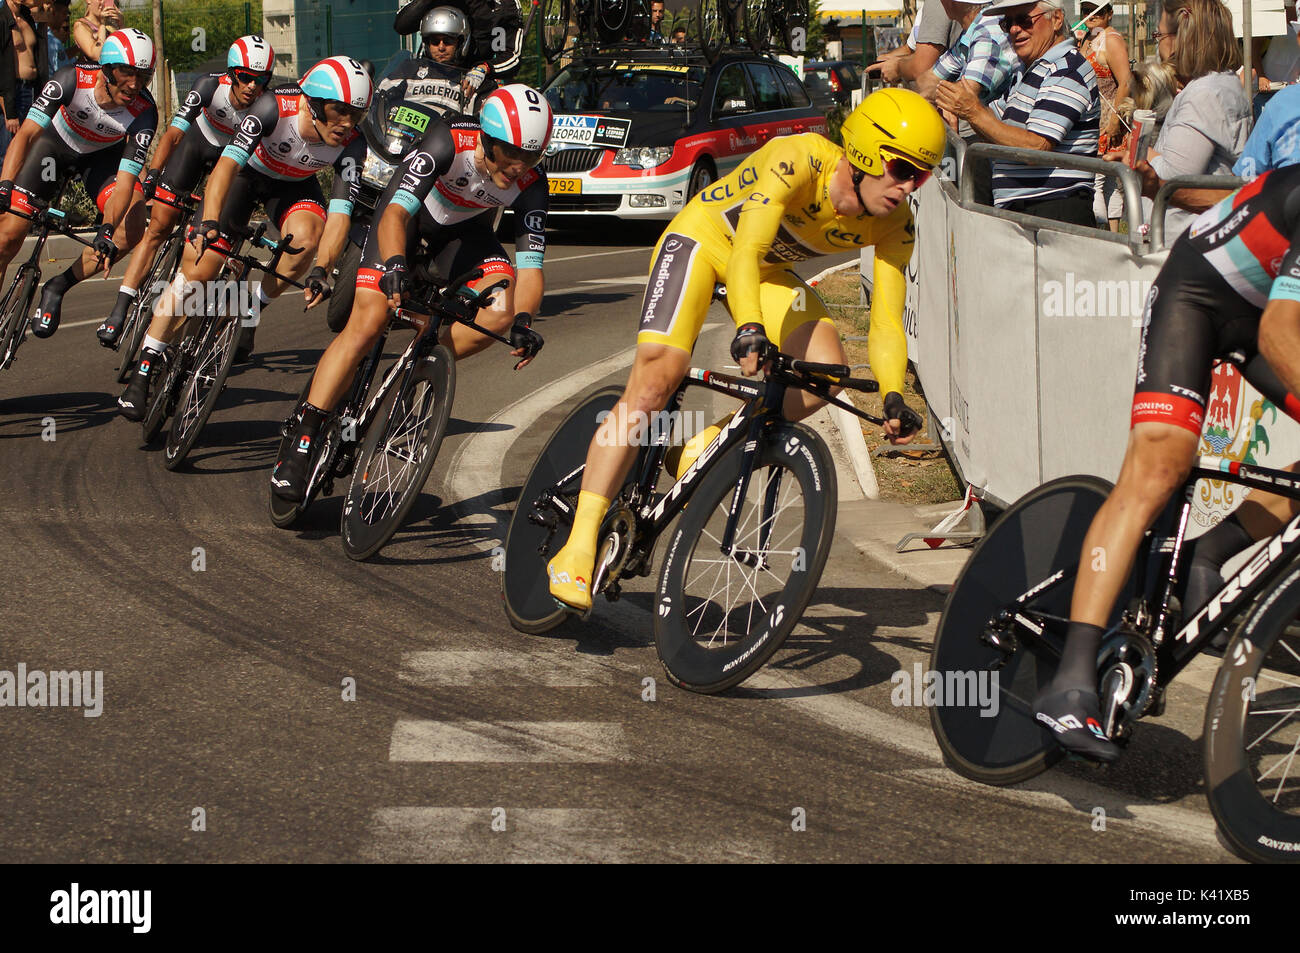 NICE - JULY 2ND : The TOUR 2013  (Tour de France)  RadioShack Leopard Team during Nice/Nice Stage 4 (25 km) Bakelants Jan in Yellow - Stock Image